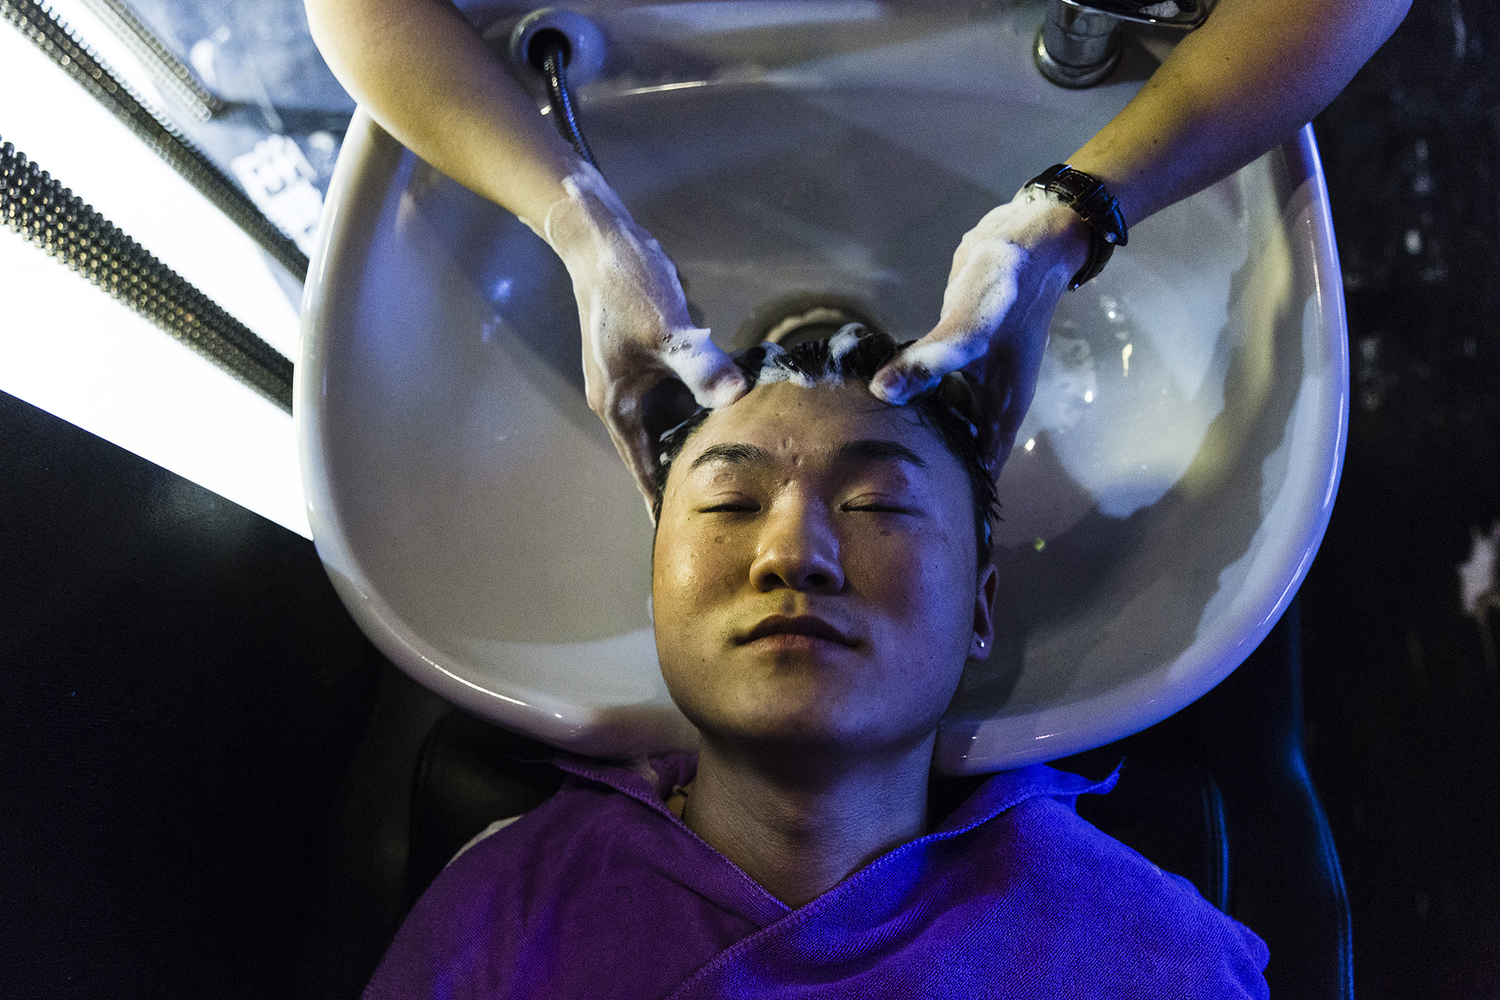 Software engineer and Puamap student Jiang Shuai gets his hair styled at a salon, May 15, 2015.